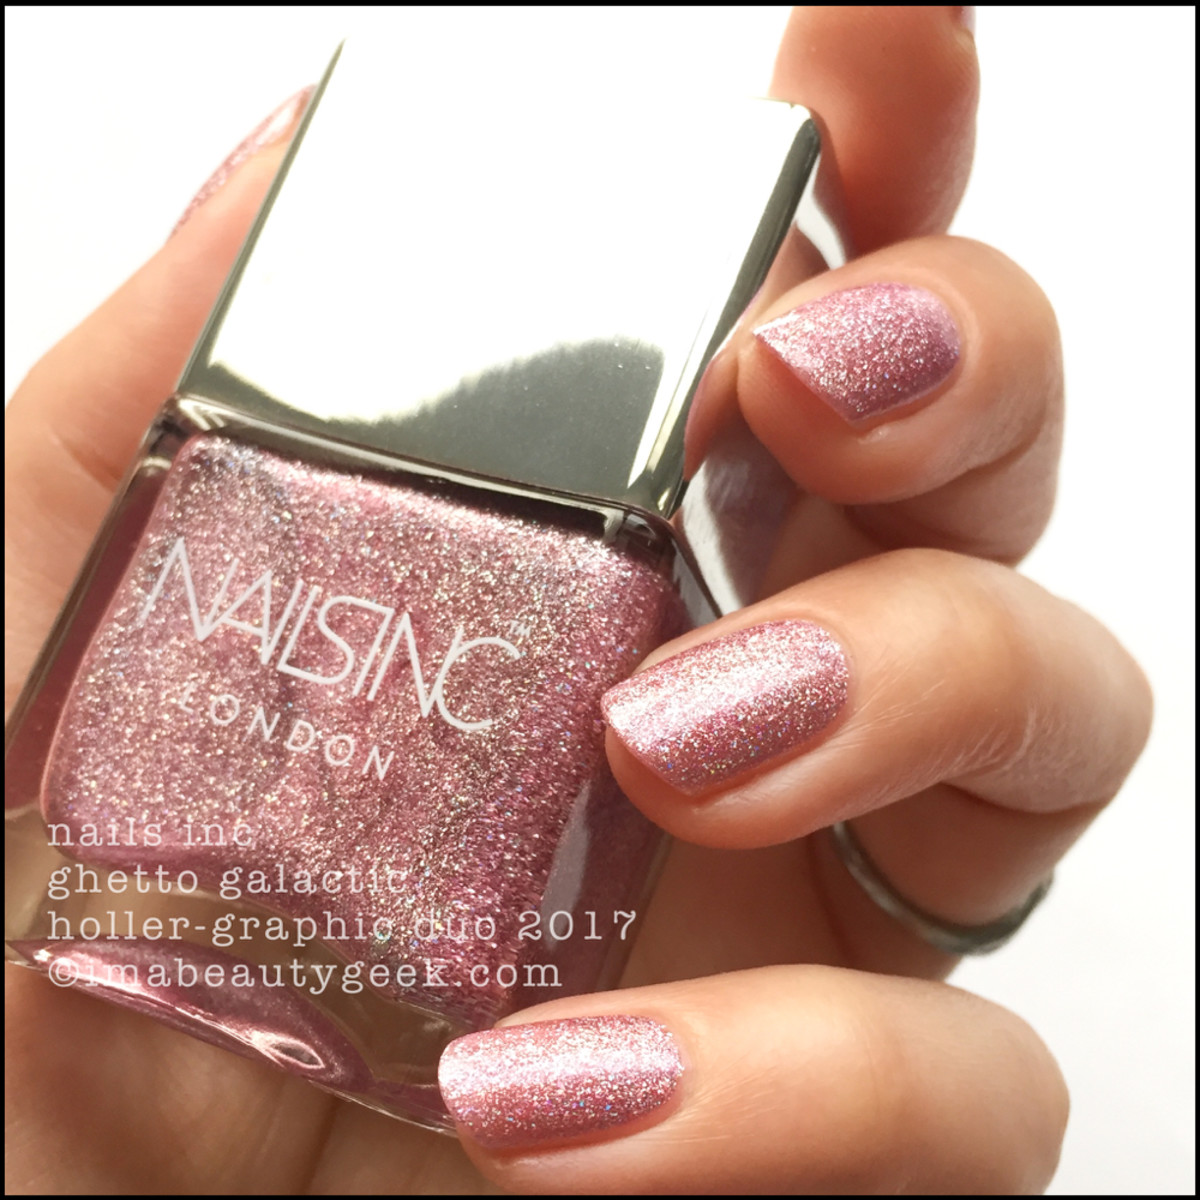 Nails Inc Ghetto Galactic Holler-Graphic Duo Swatches Review 2017 1